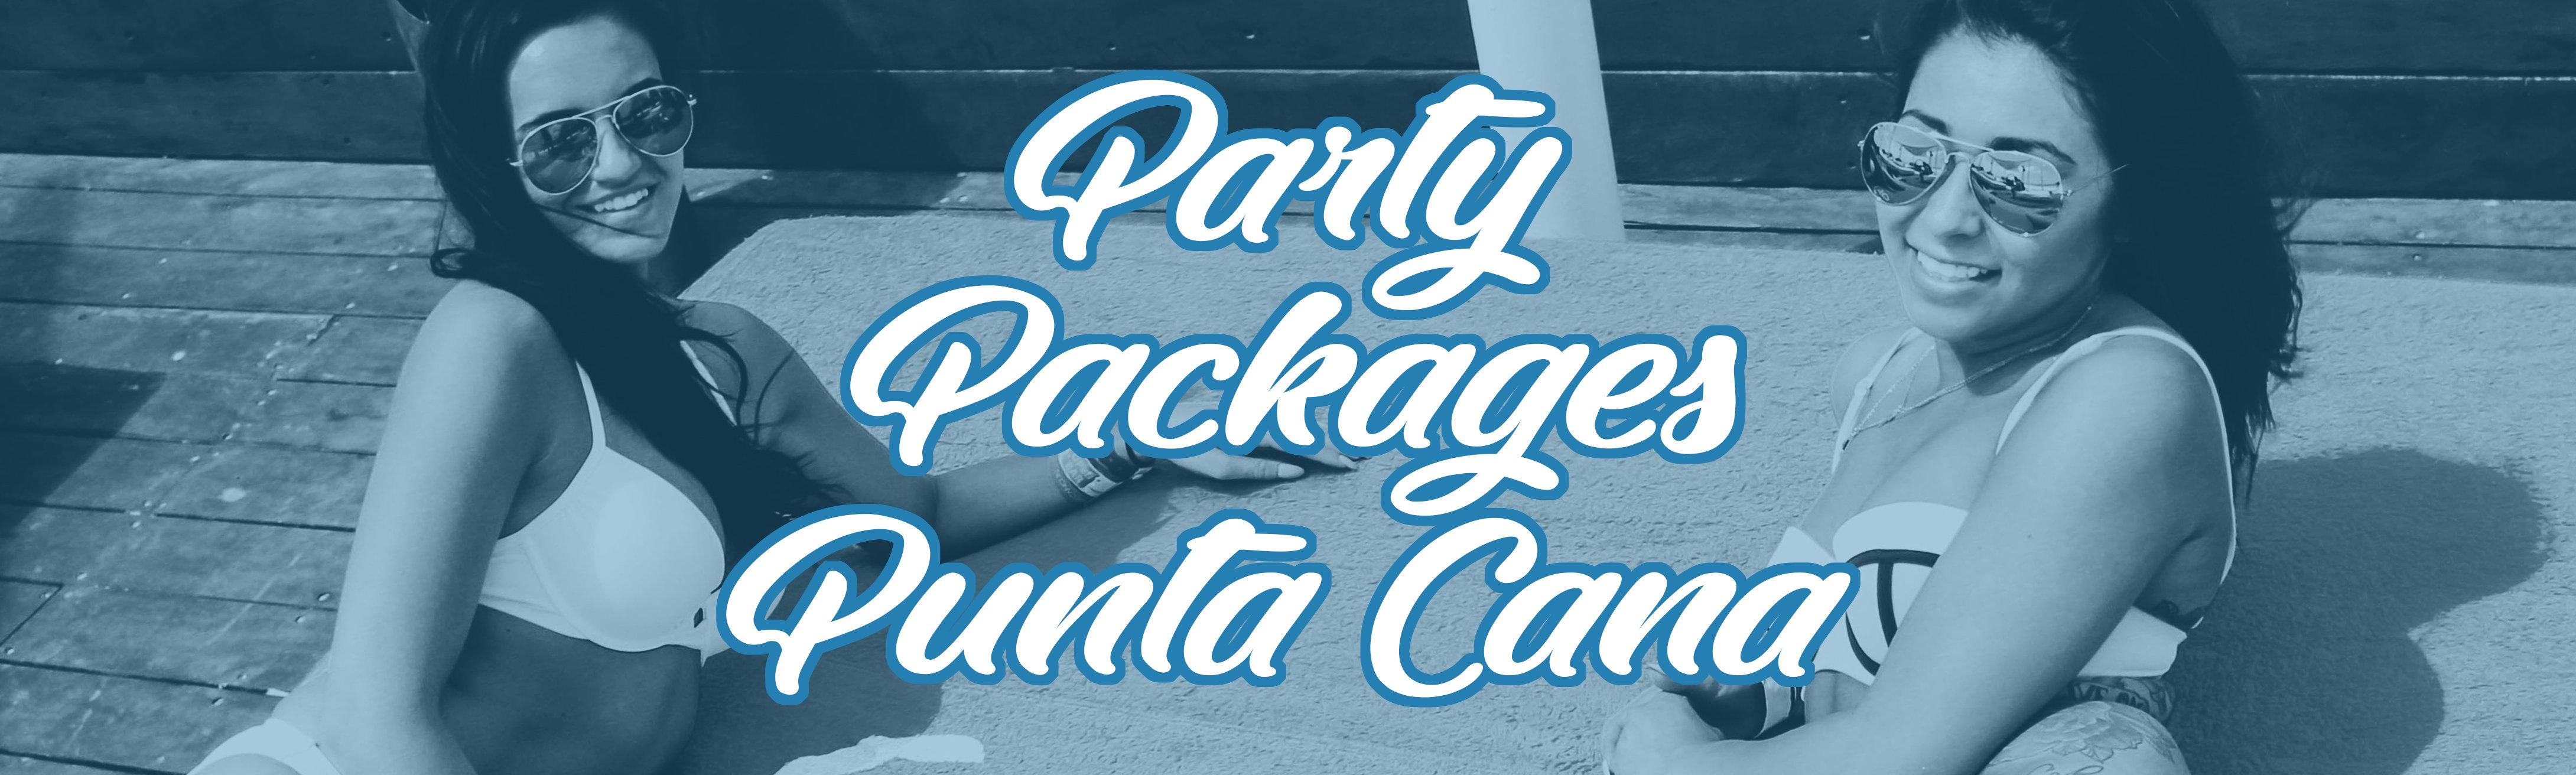 Spring Break Party Package PUNTA CANA